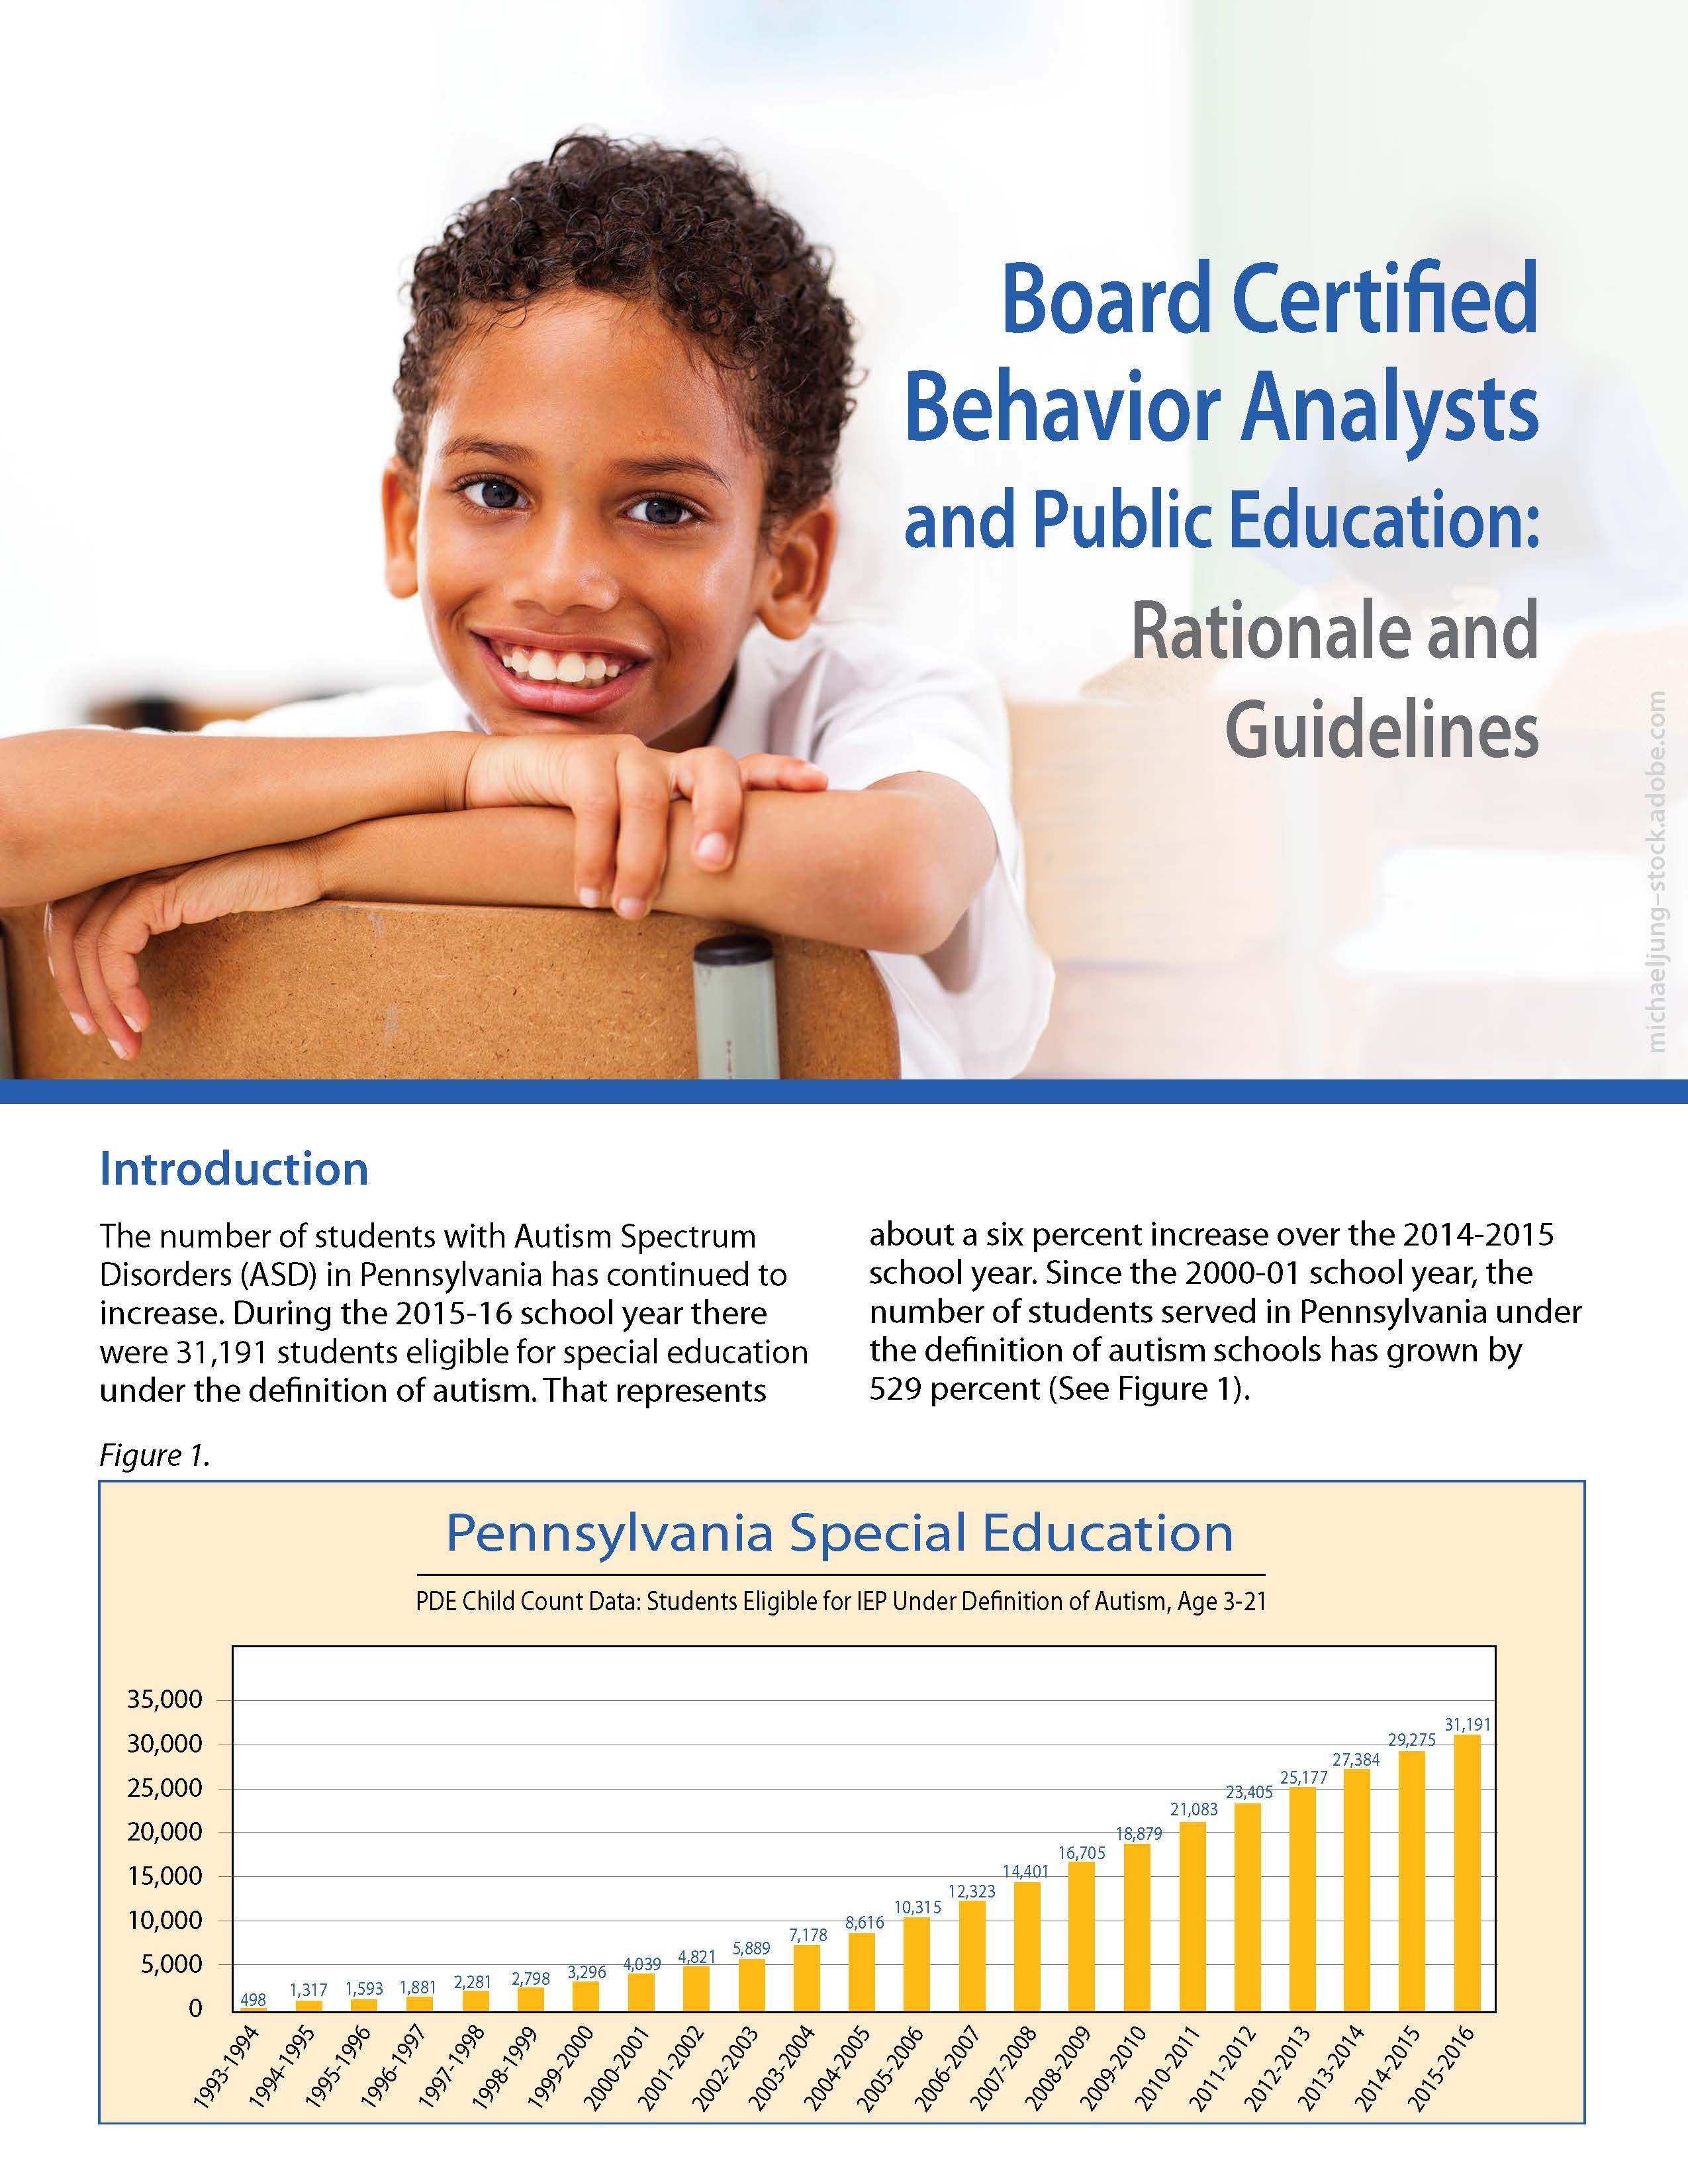 Board Certified Behavior Analysts and Public Education: Rationale and Guidelines